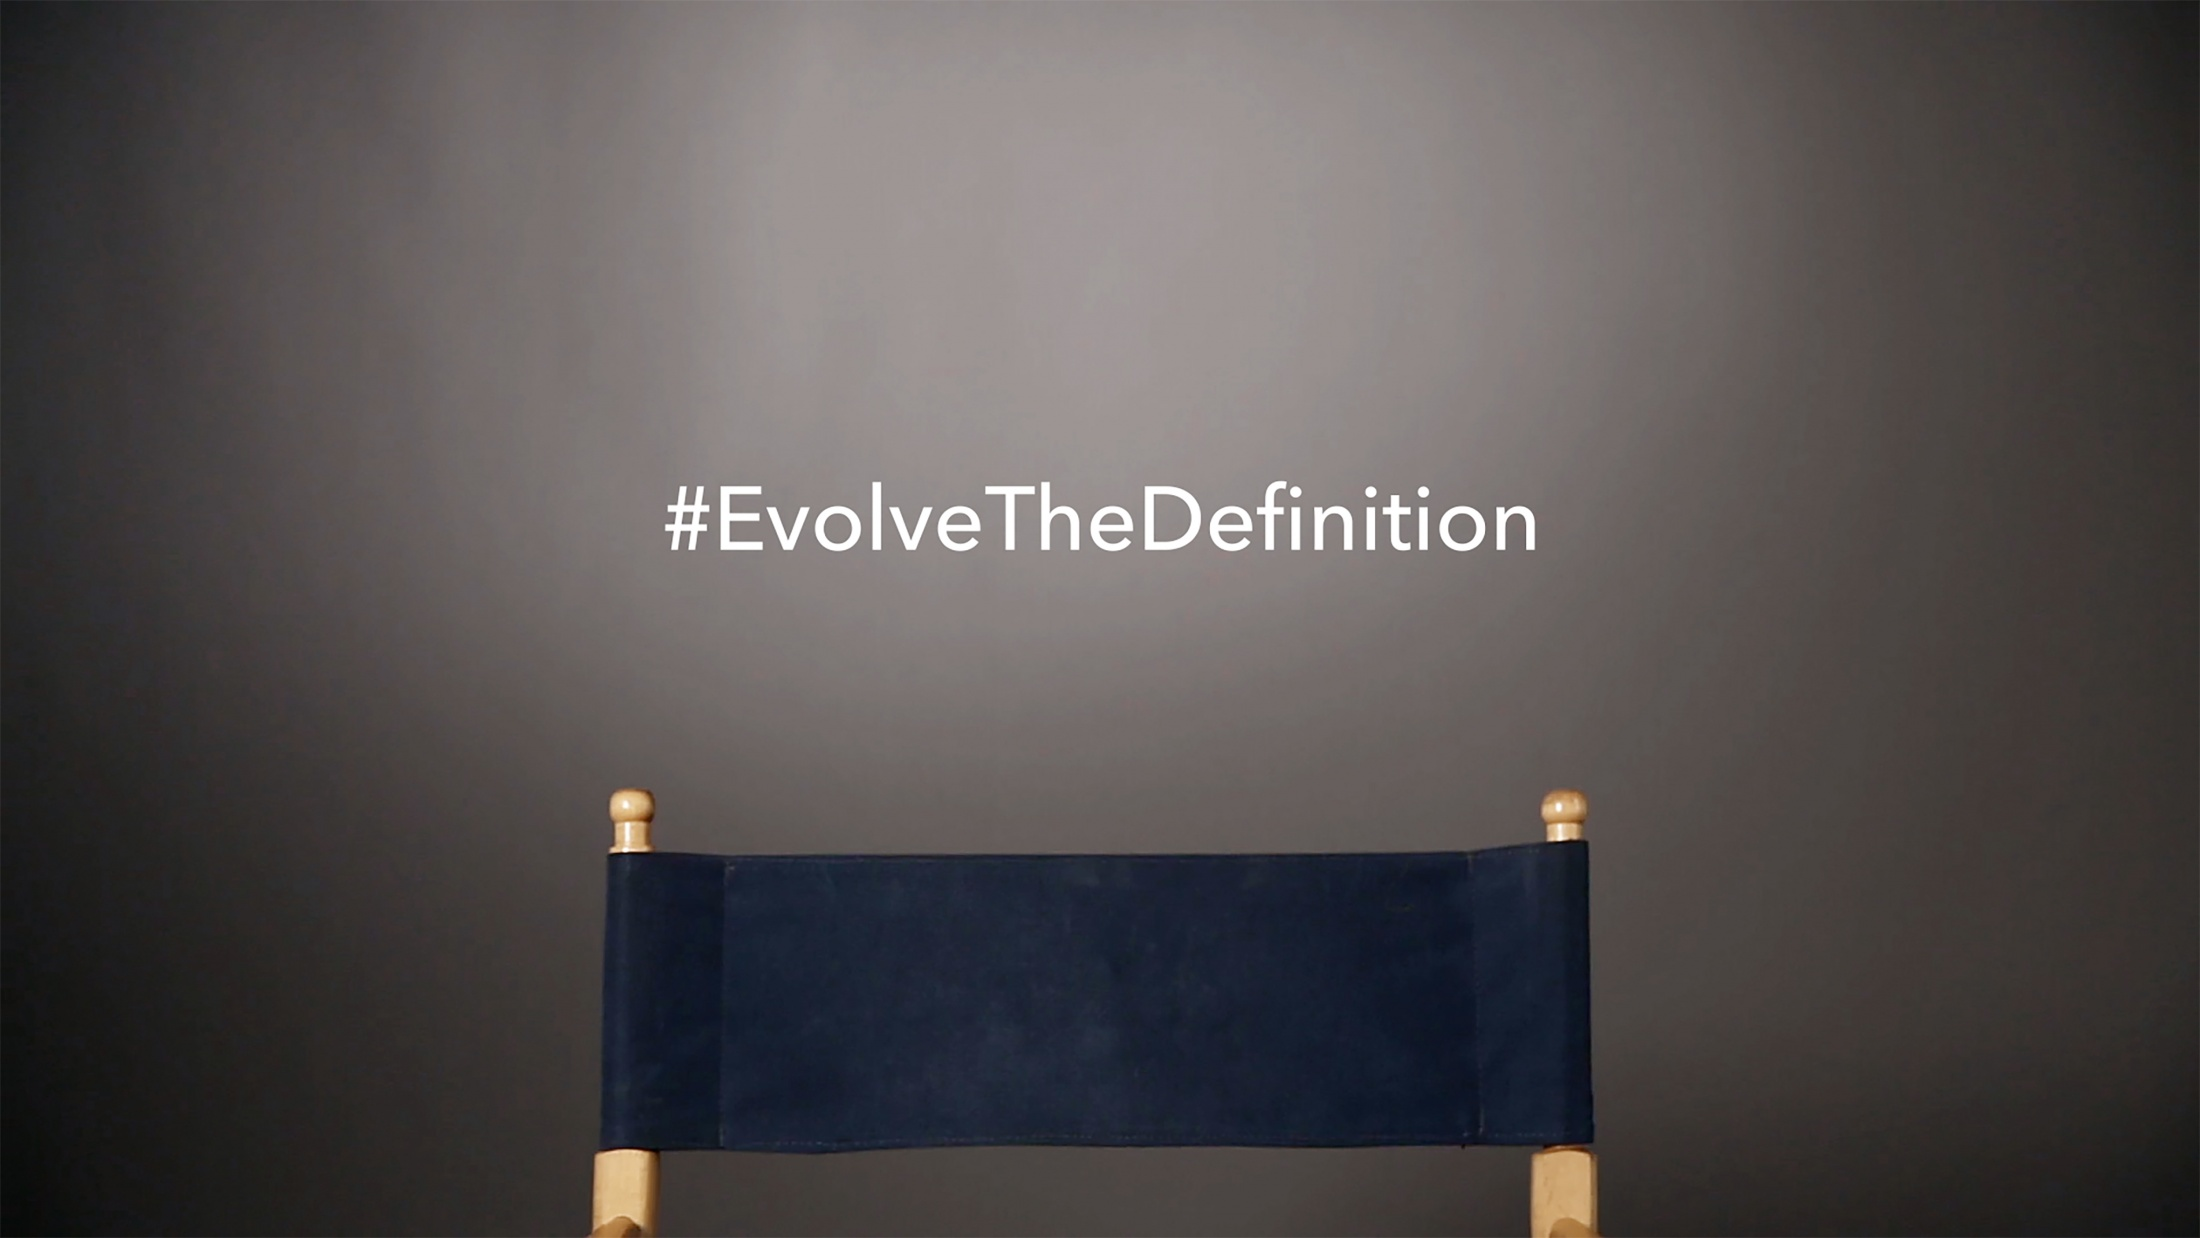 Thumbnail for #EvolveTheDefinition